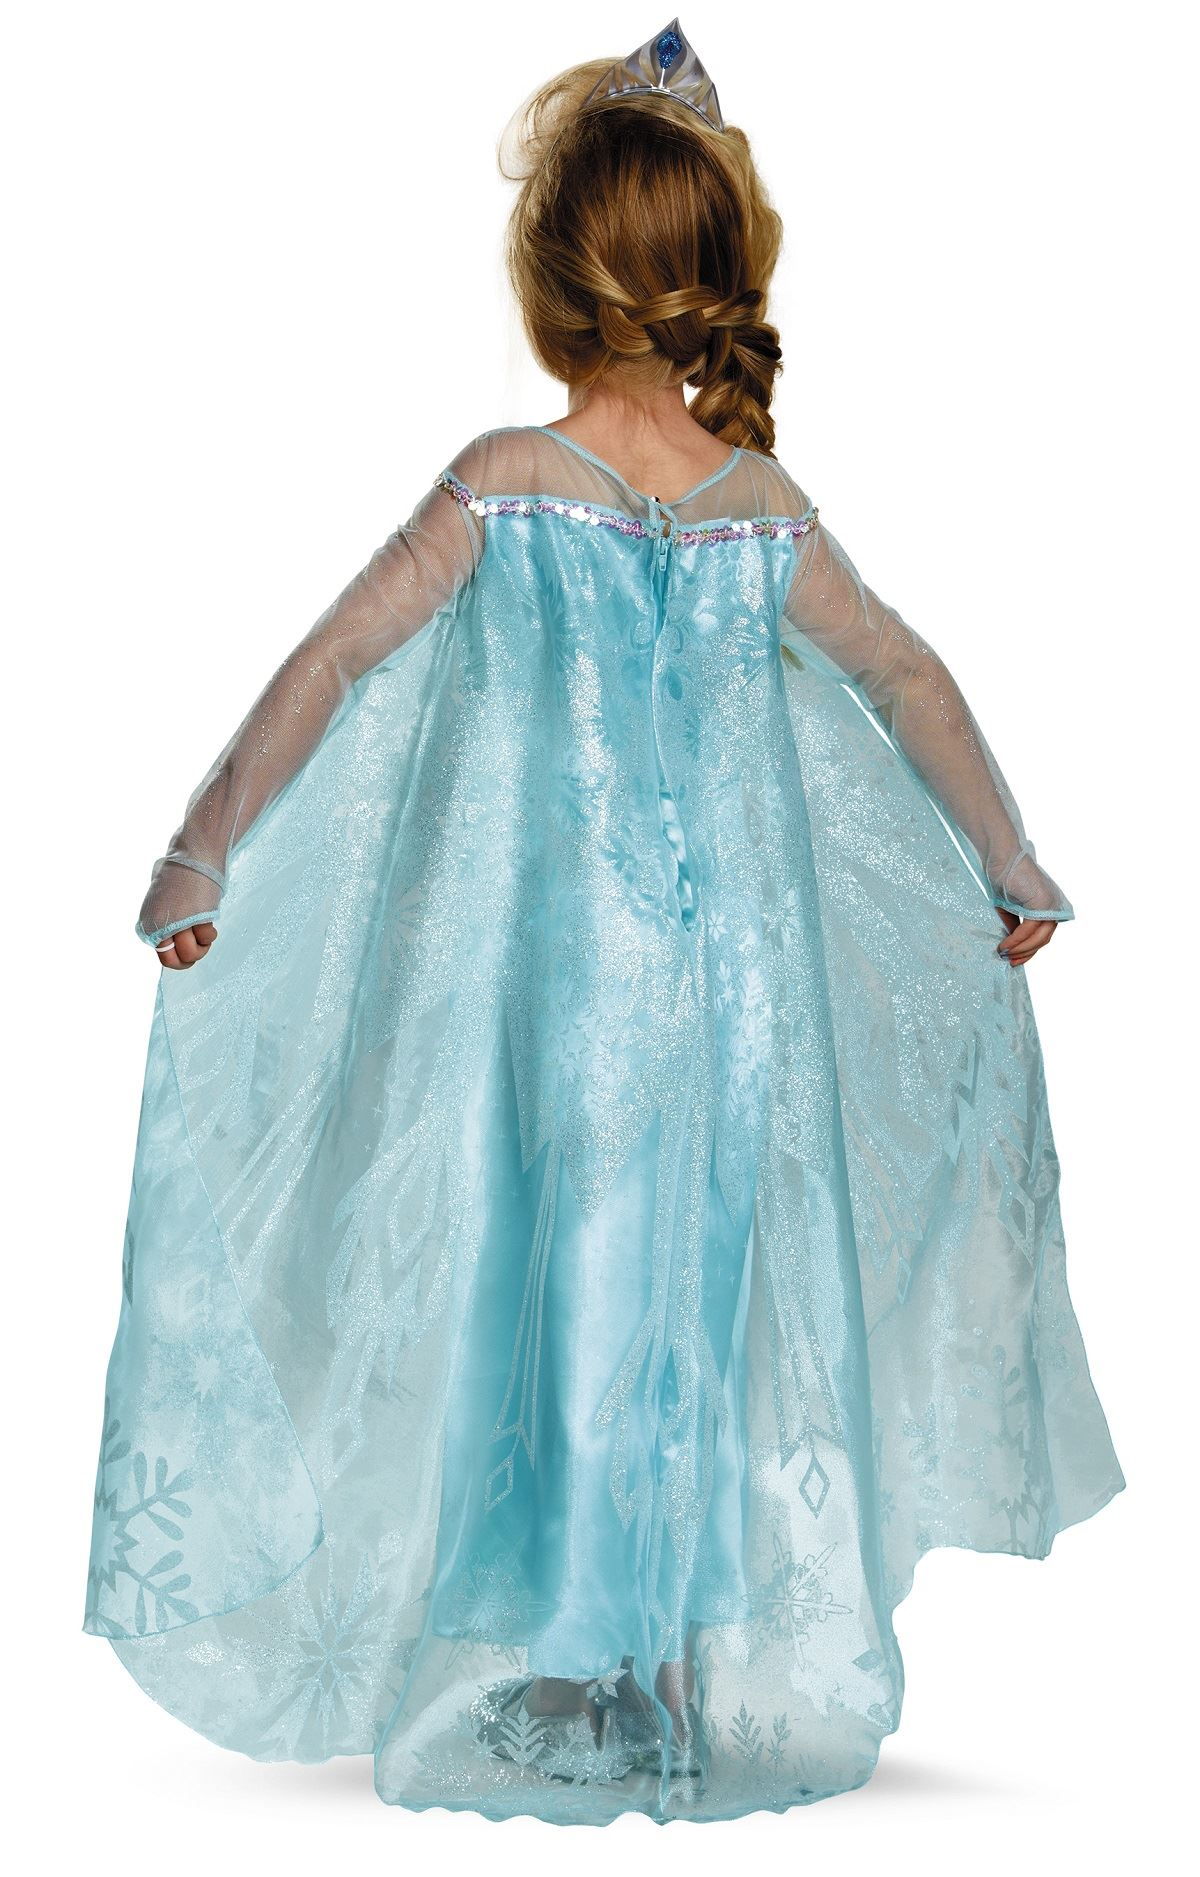 UPDATE: If you've made a Frozen costume, we'd love to see it! You can add your photo in the comments. It's no secret that my little princesses have me completely wrapped around their little fingers. I don't mind obliging for certain things, and Frozen costumes are certainly one of those.